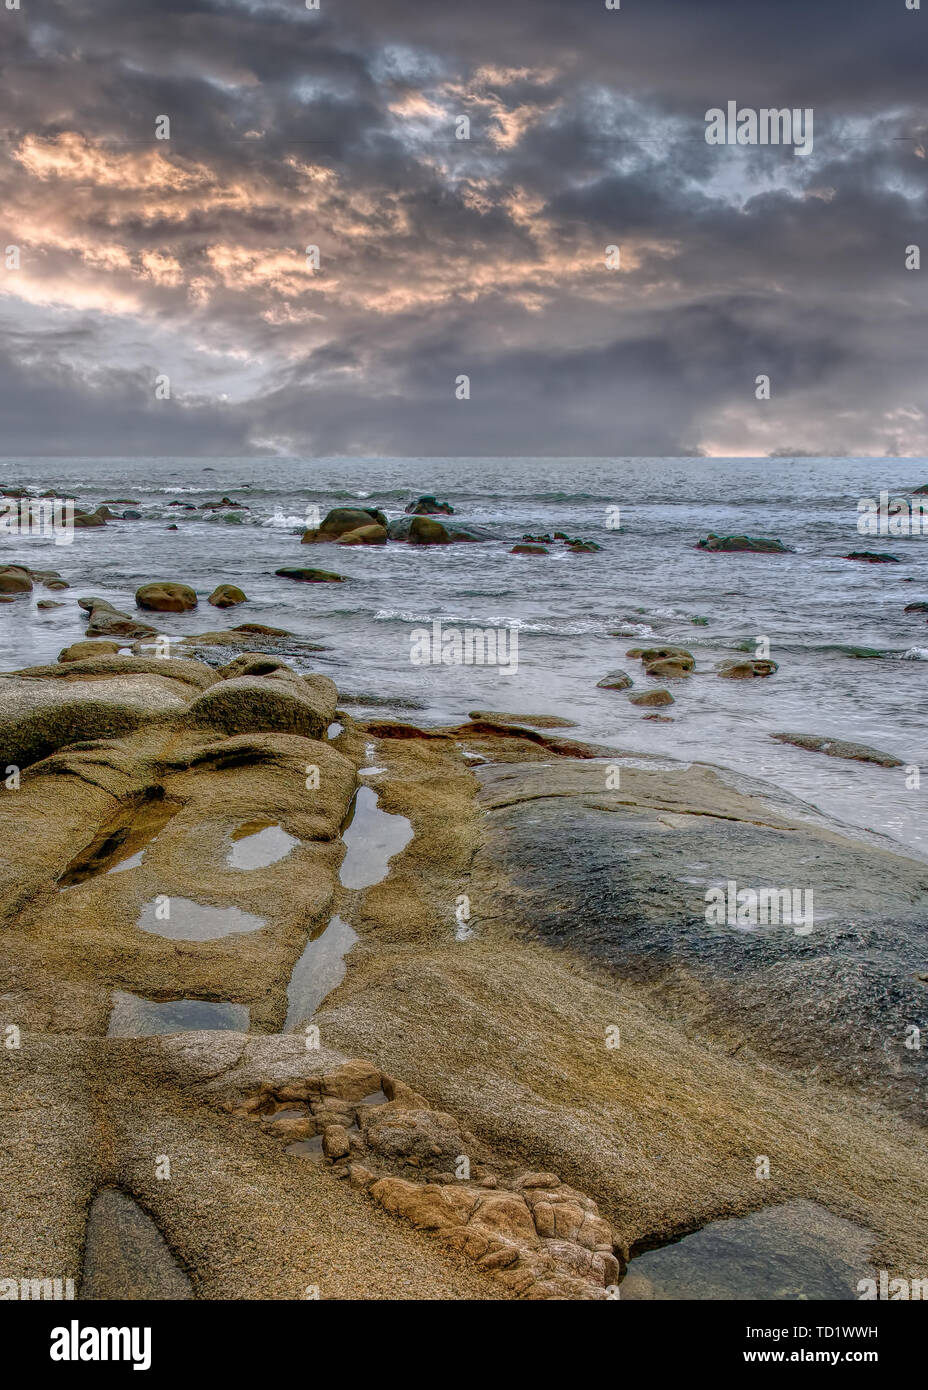 Tranquil seashore with rocks just before a storm, Hainan Island, China - Stock Image